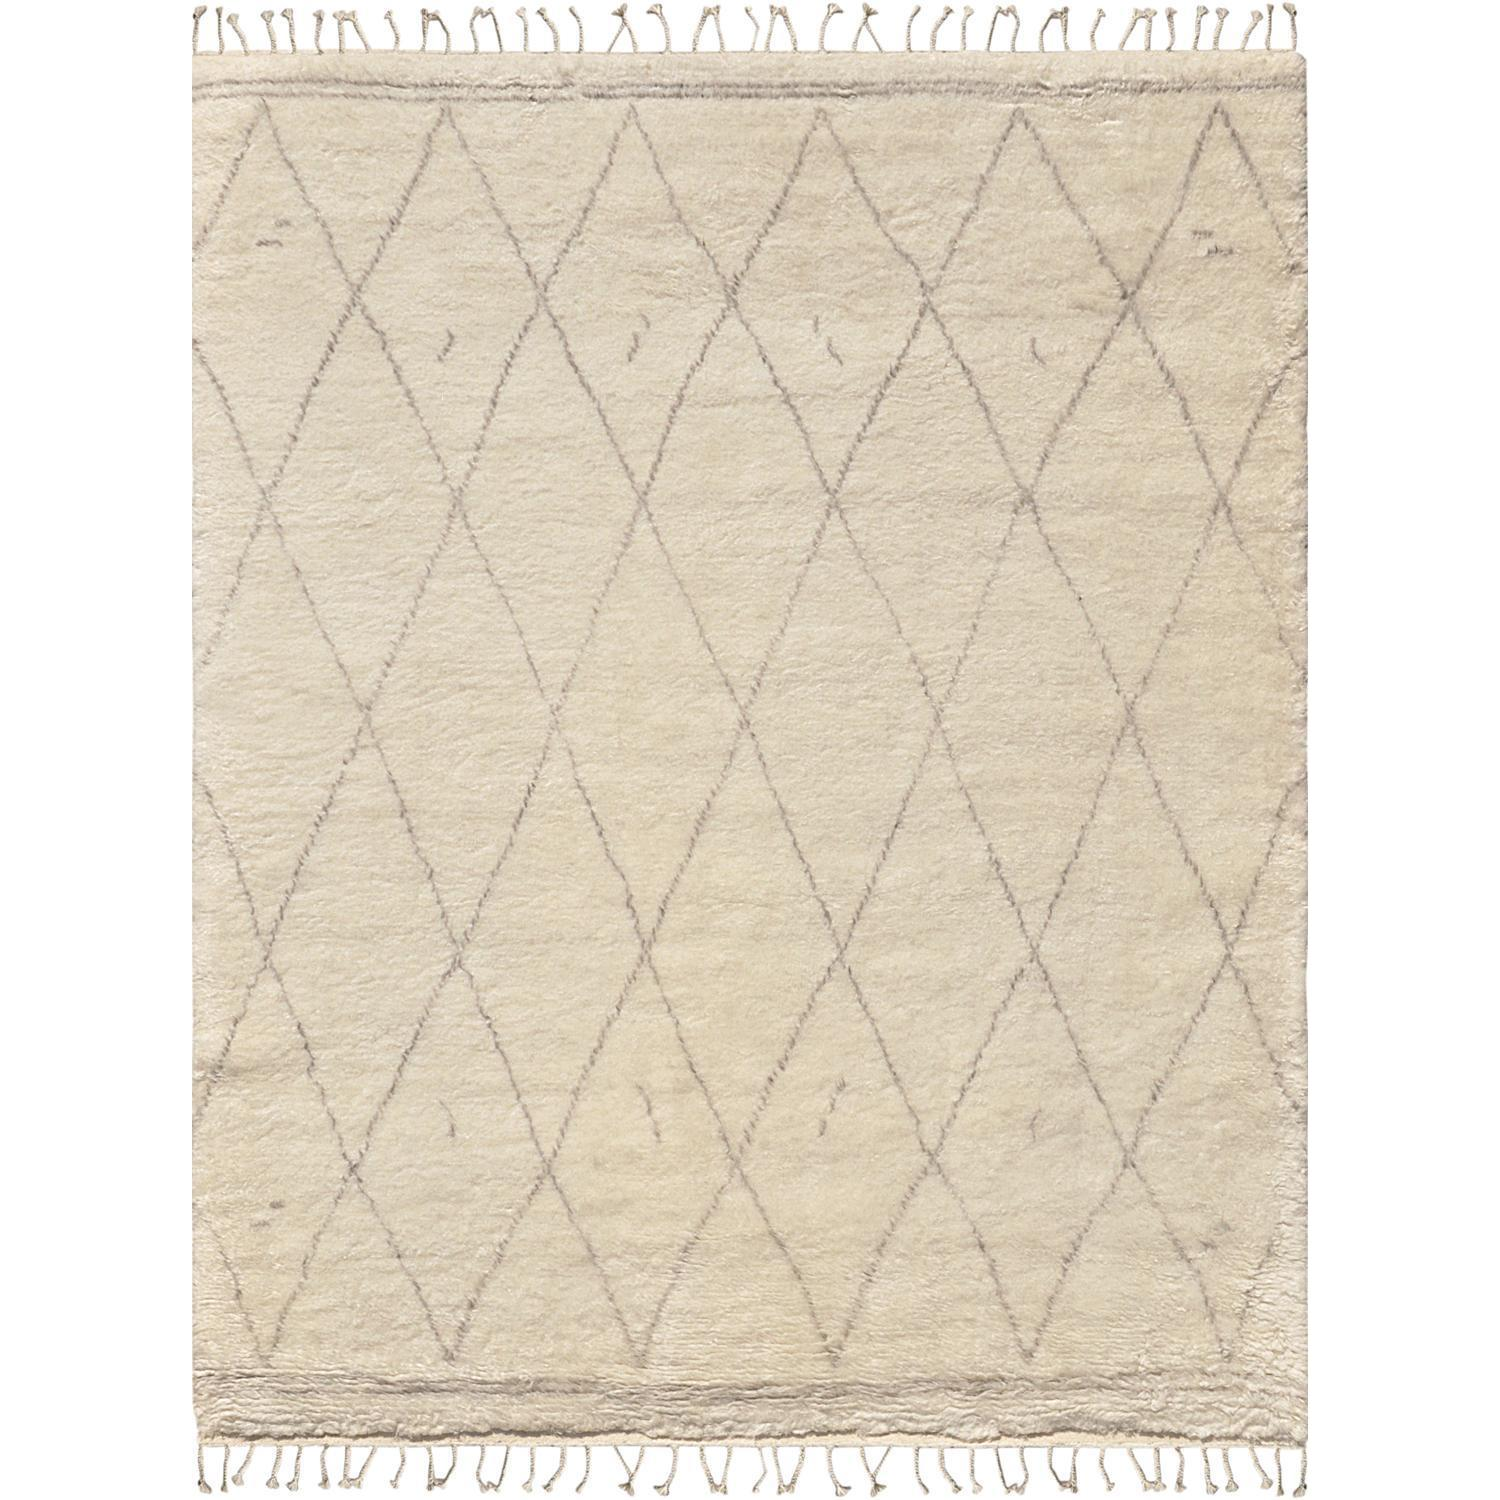 Casablanca Collection Moroccan Ivory/Grey Wool Hand-knotted Area Rug (89 x 119) - 9 x 12 (Ivory - 9 x 12)